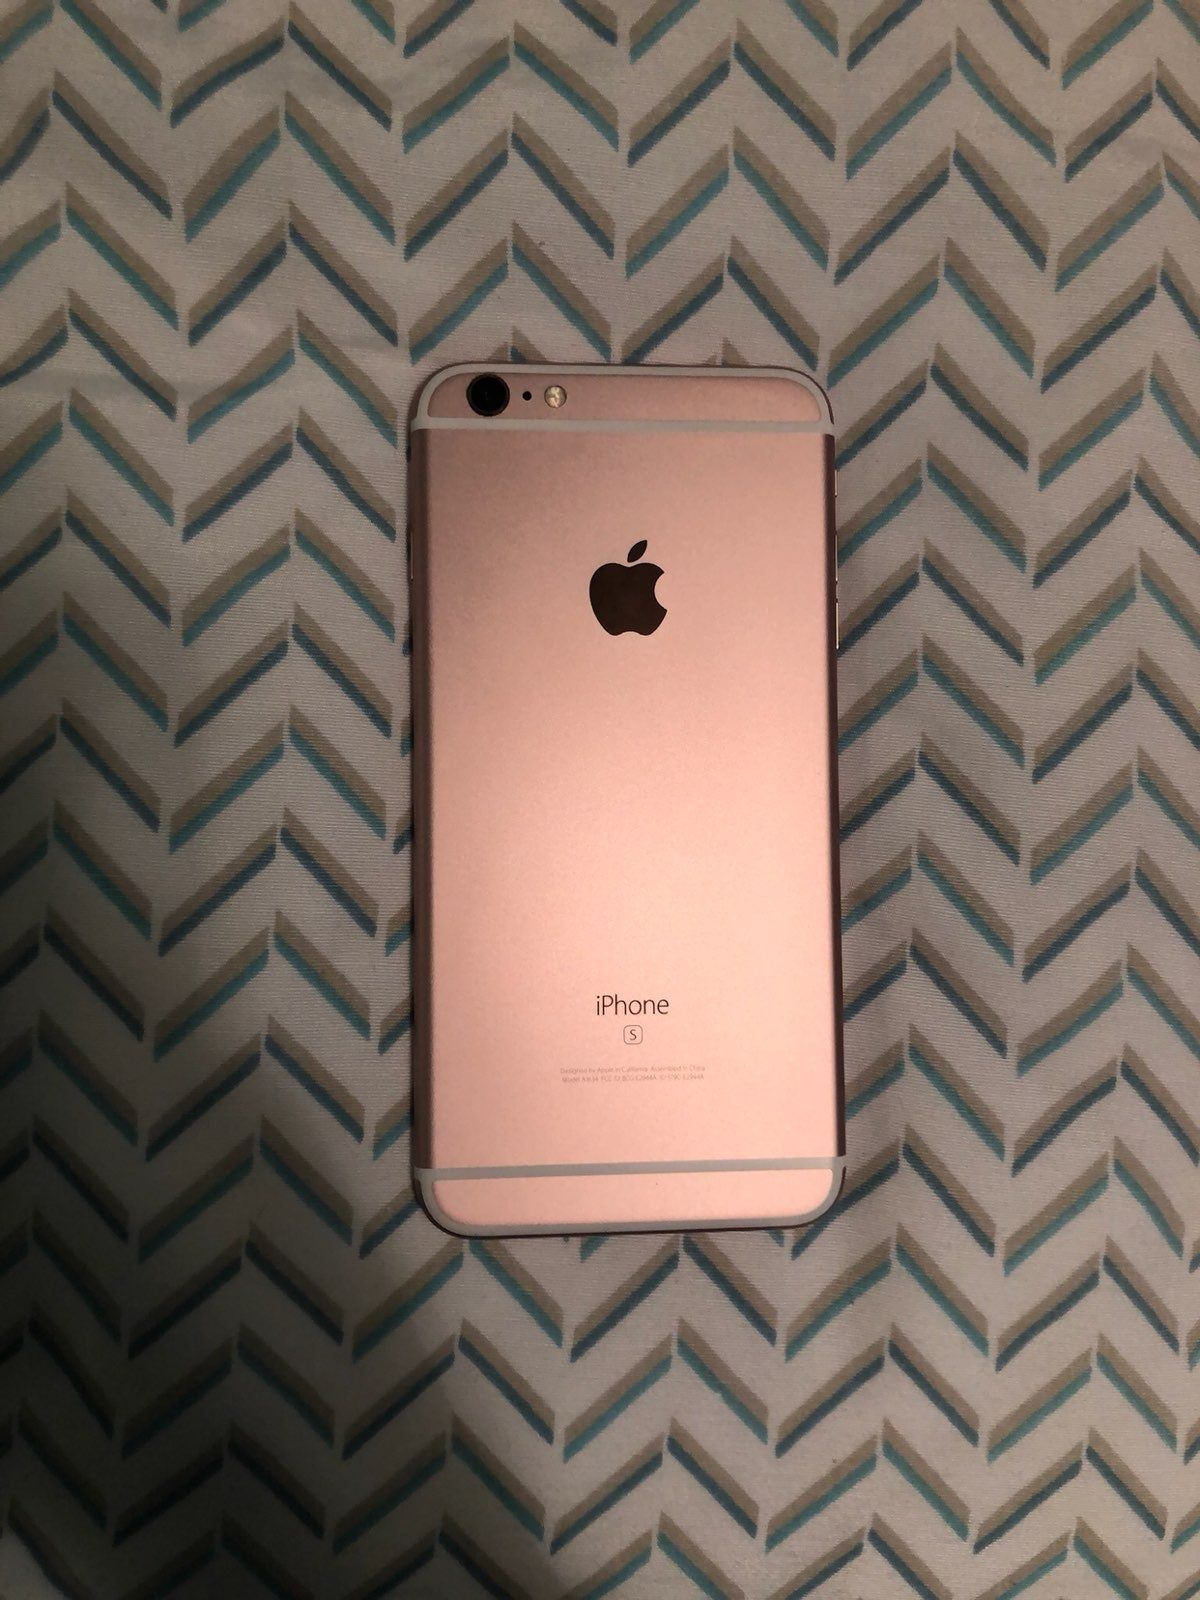 Rose Gold Iphone 6 Plus In Great Condition No Screen Cracks Rose Gold Iphone Gold Iphone 6 Plus Iphone